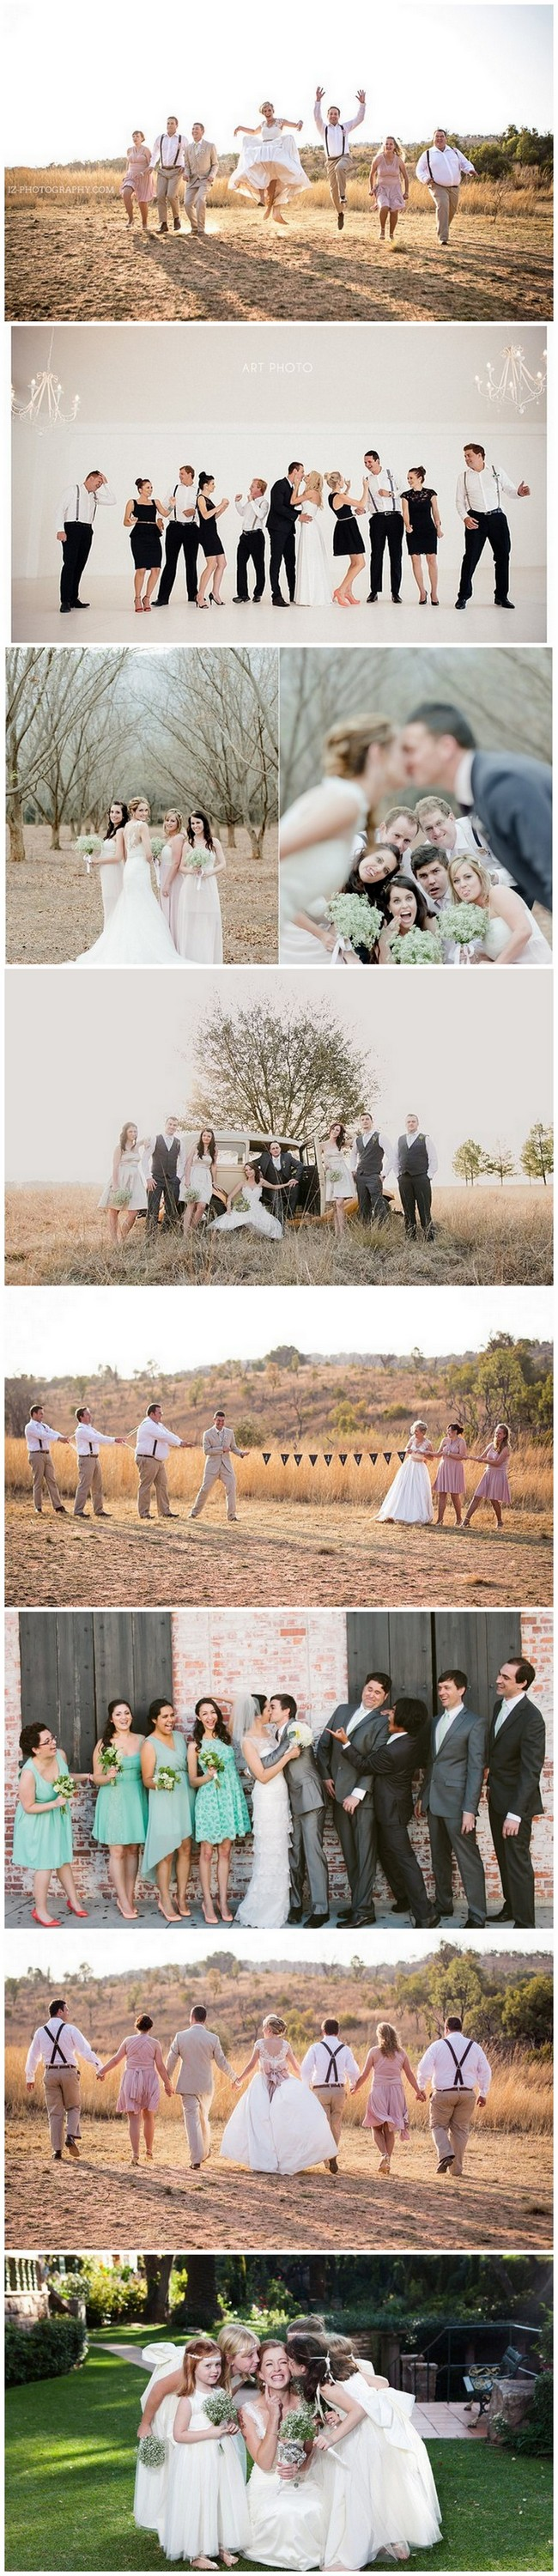 Fun Bridal Party Photo Ideas https://www.confettidaydreams.com/wedding-photo-ideas-and-poses-for-your-wedding-party/